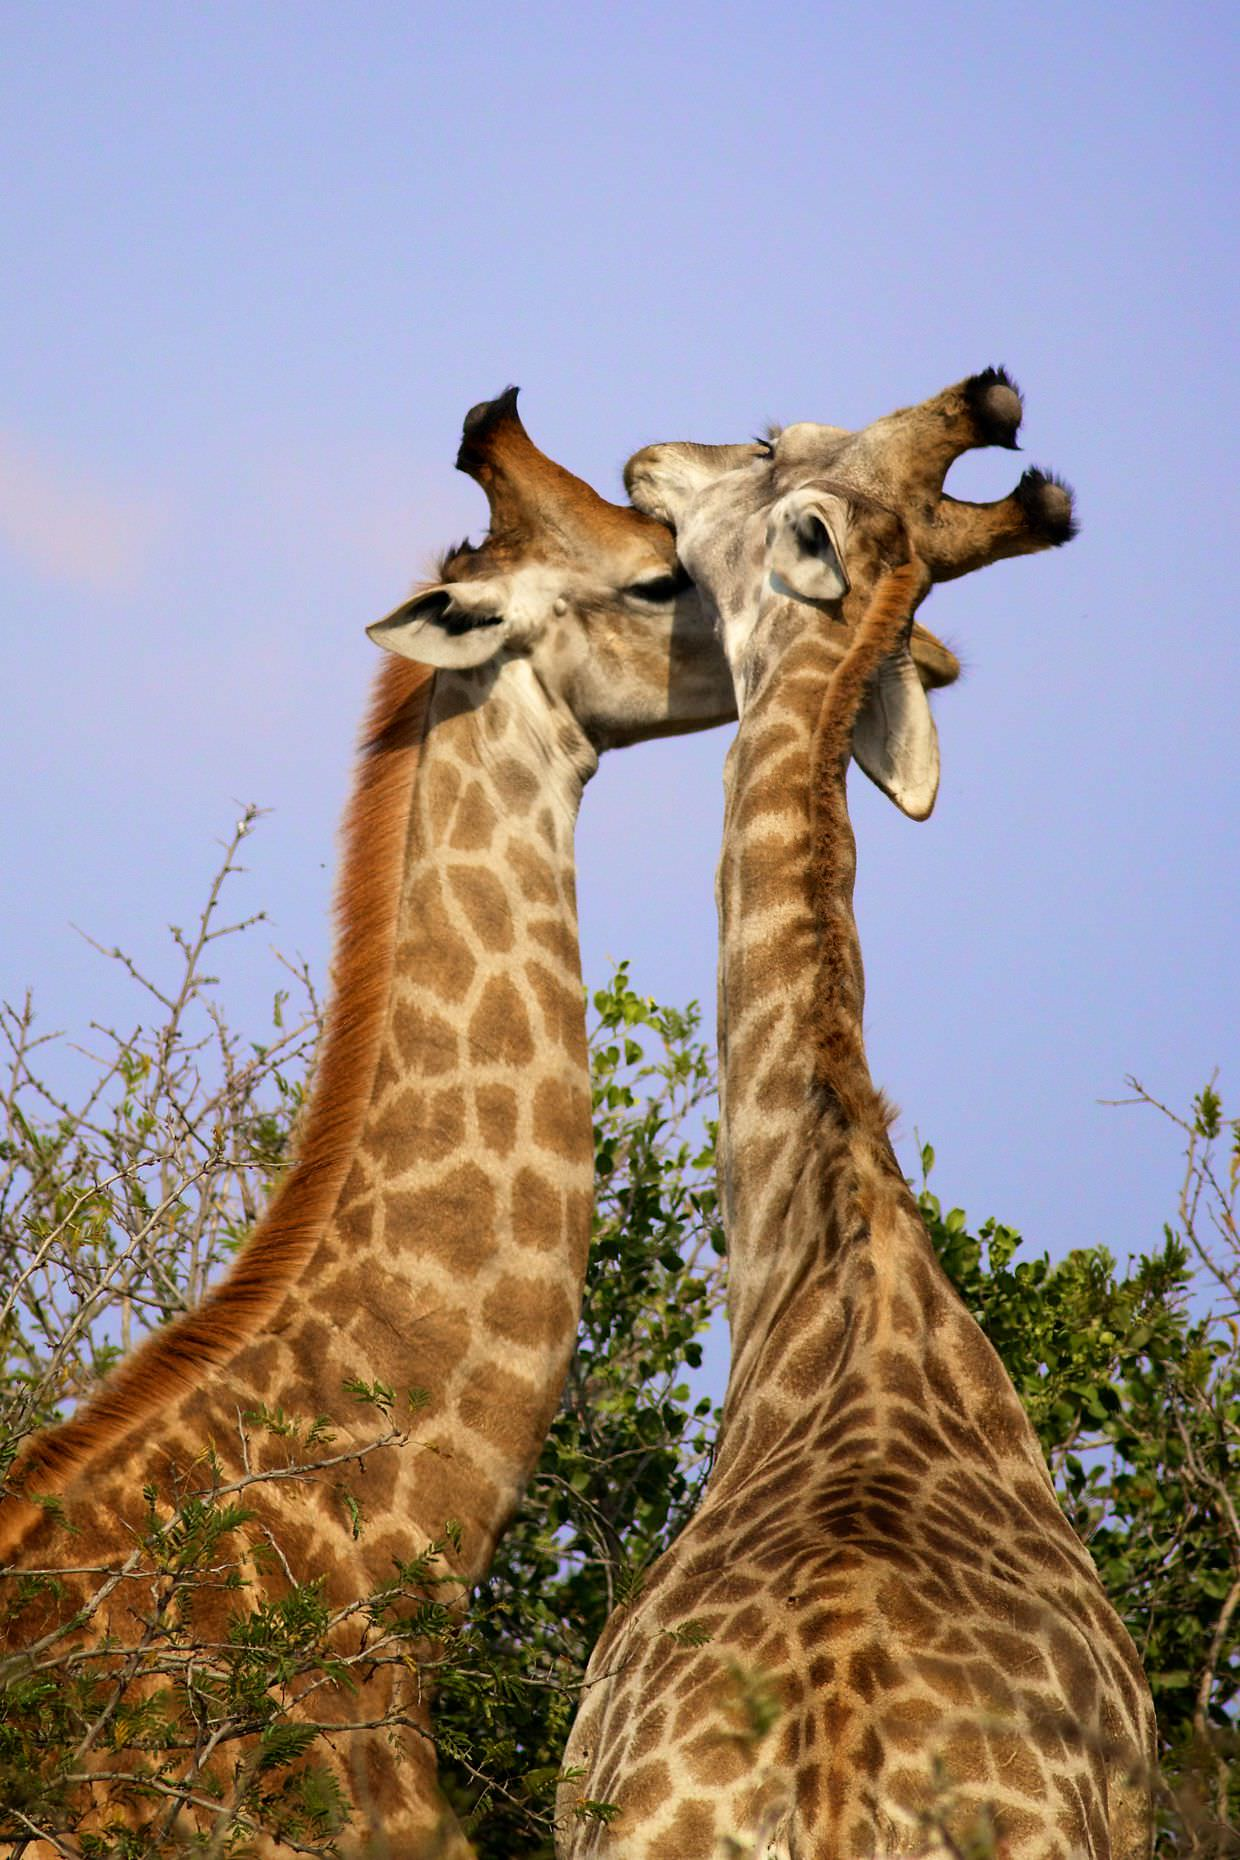 Loving giraffe siblings